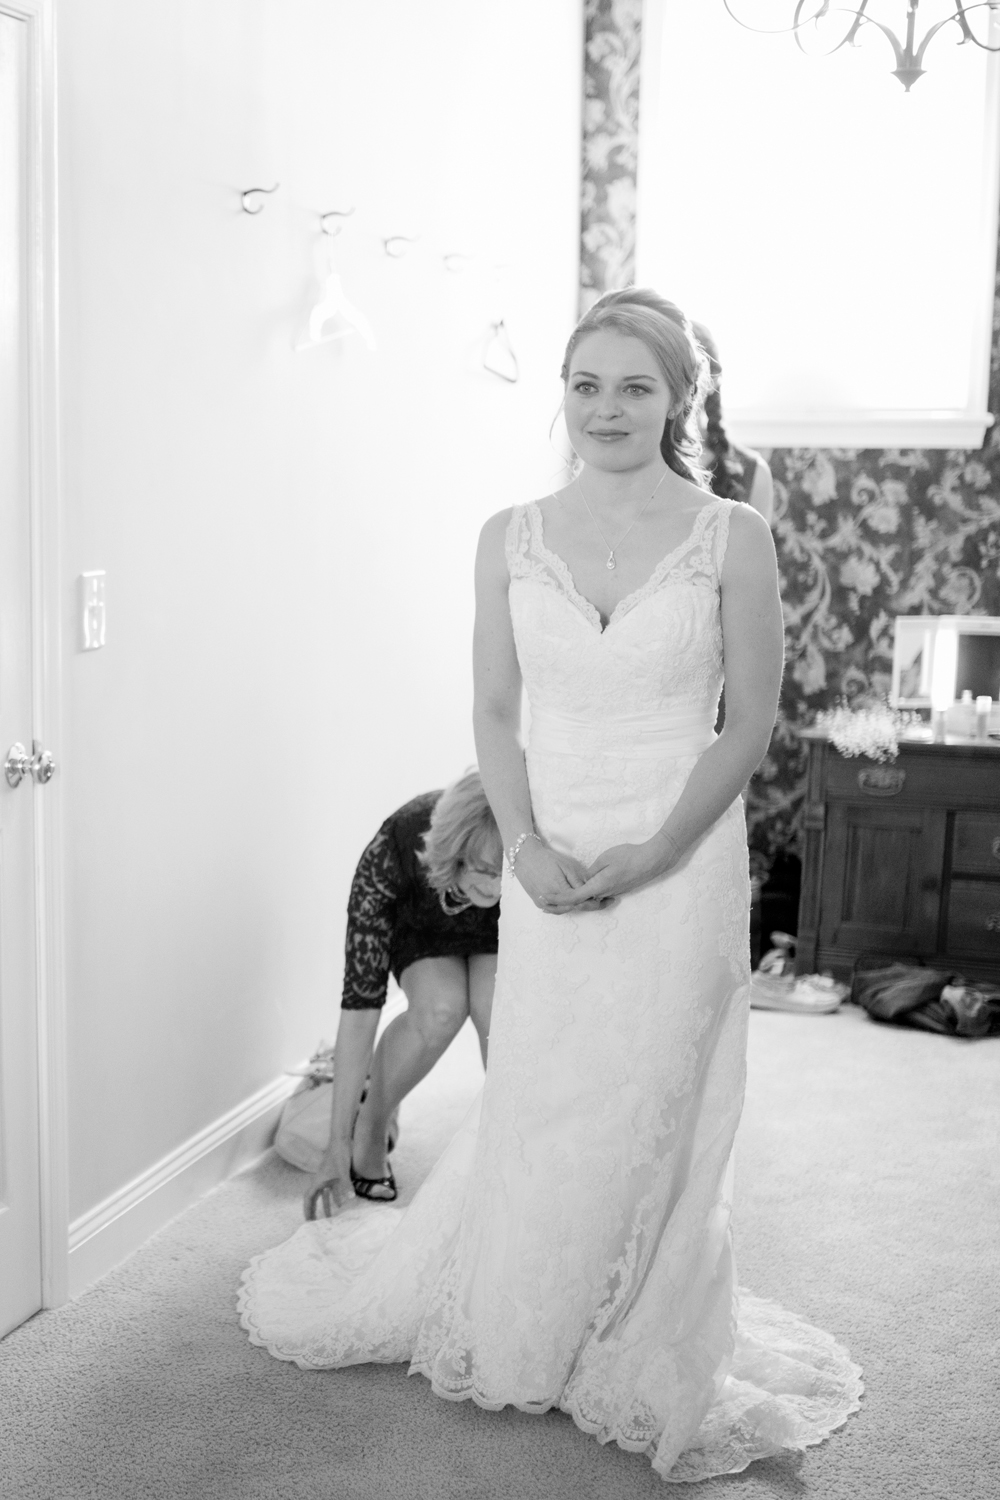 Bride sees herself in the mirror for the first time on her wedding day.